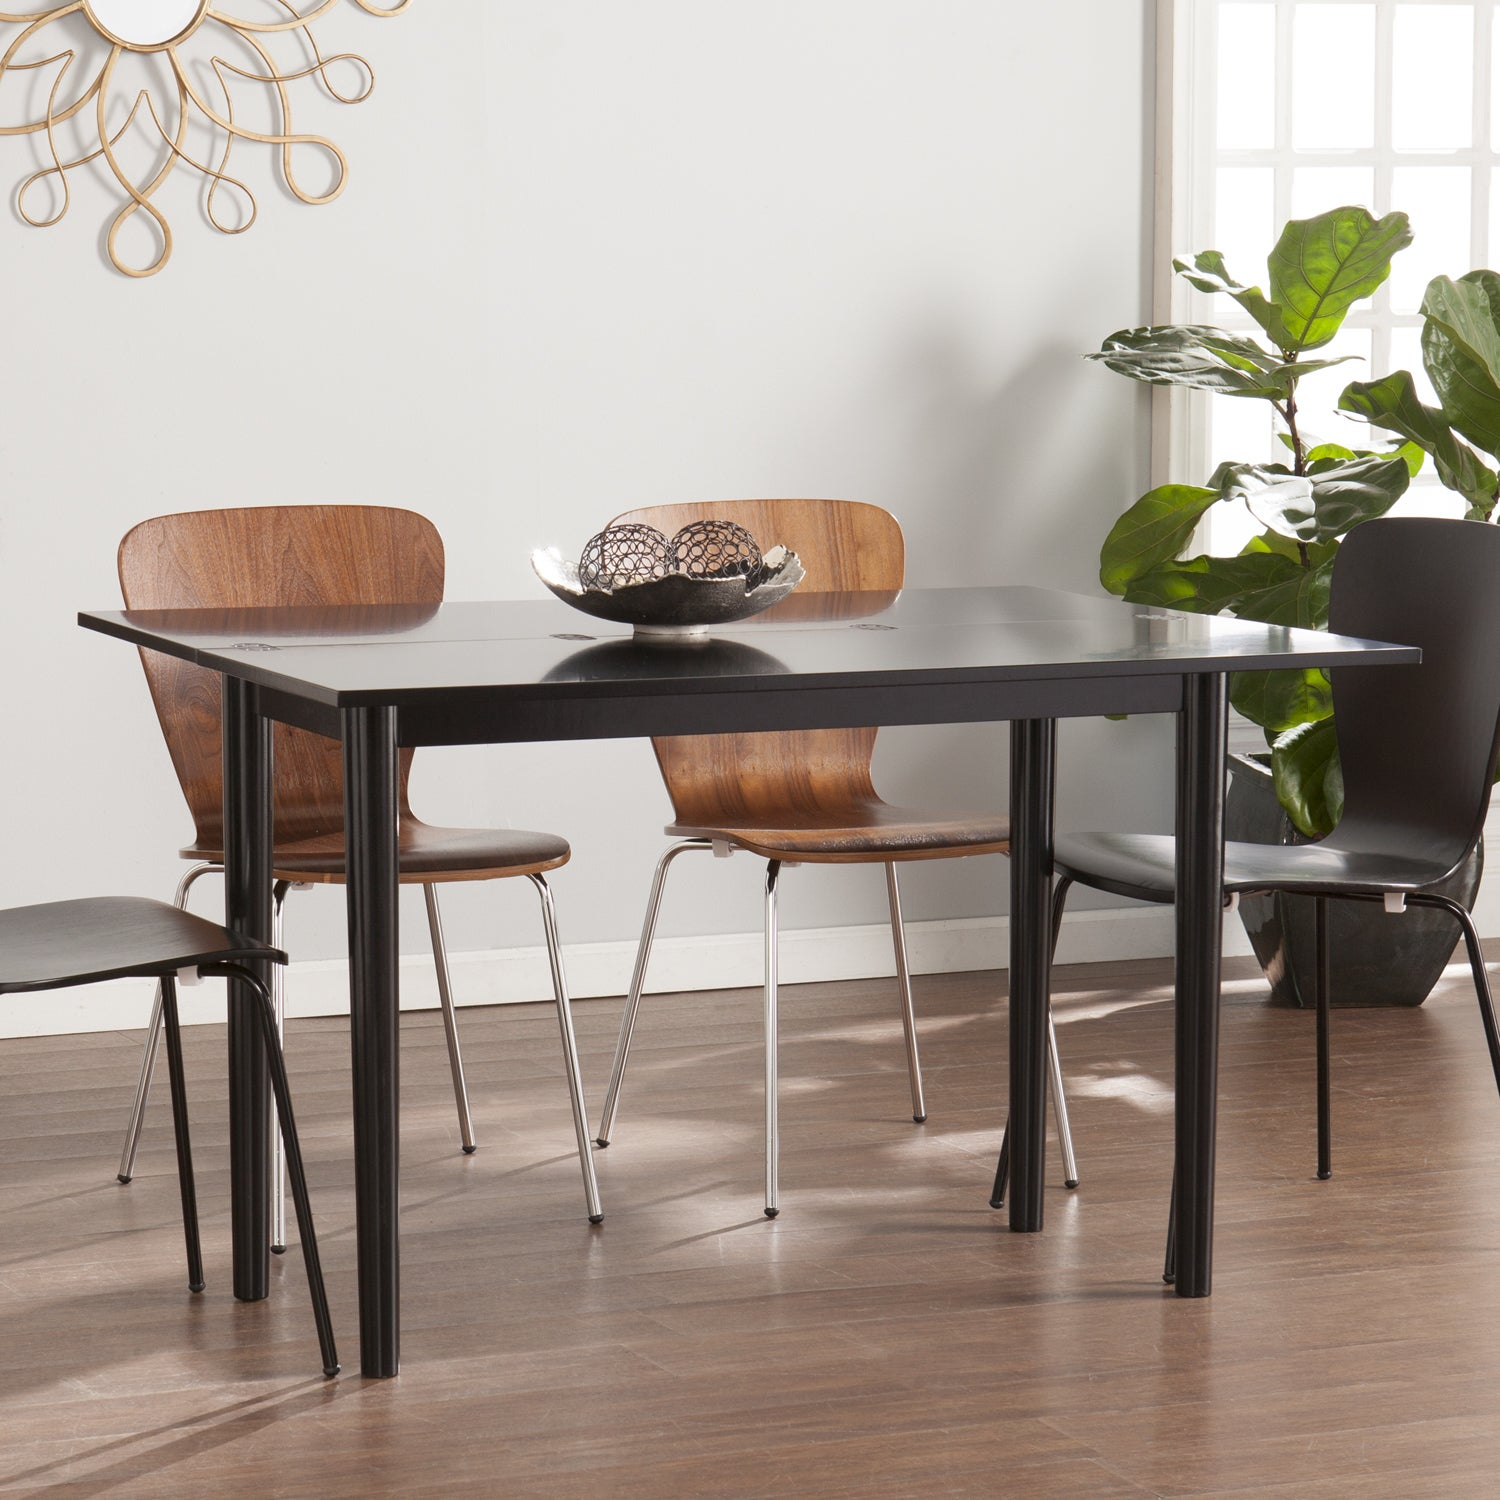 Harper Blvd Convertible Console to Dining Table w 2pc Bla...